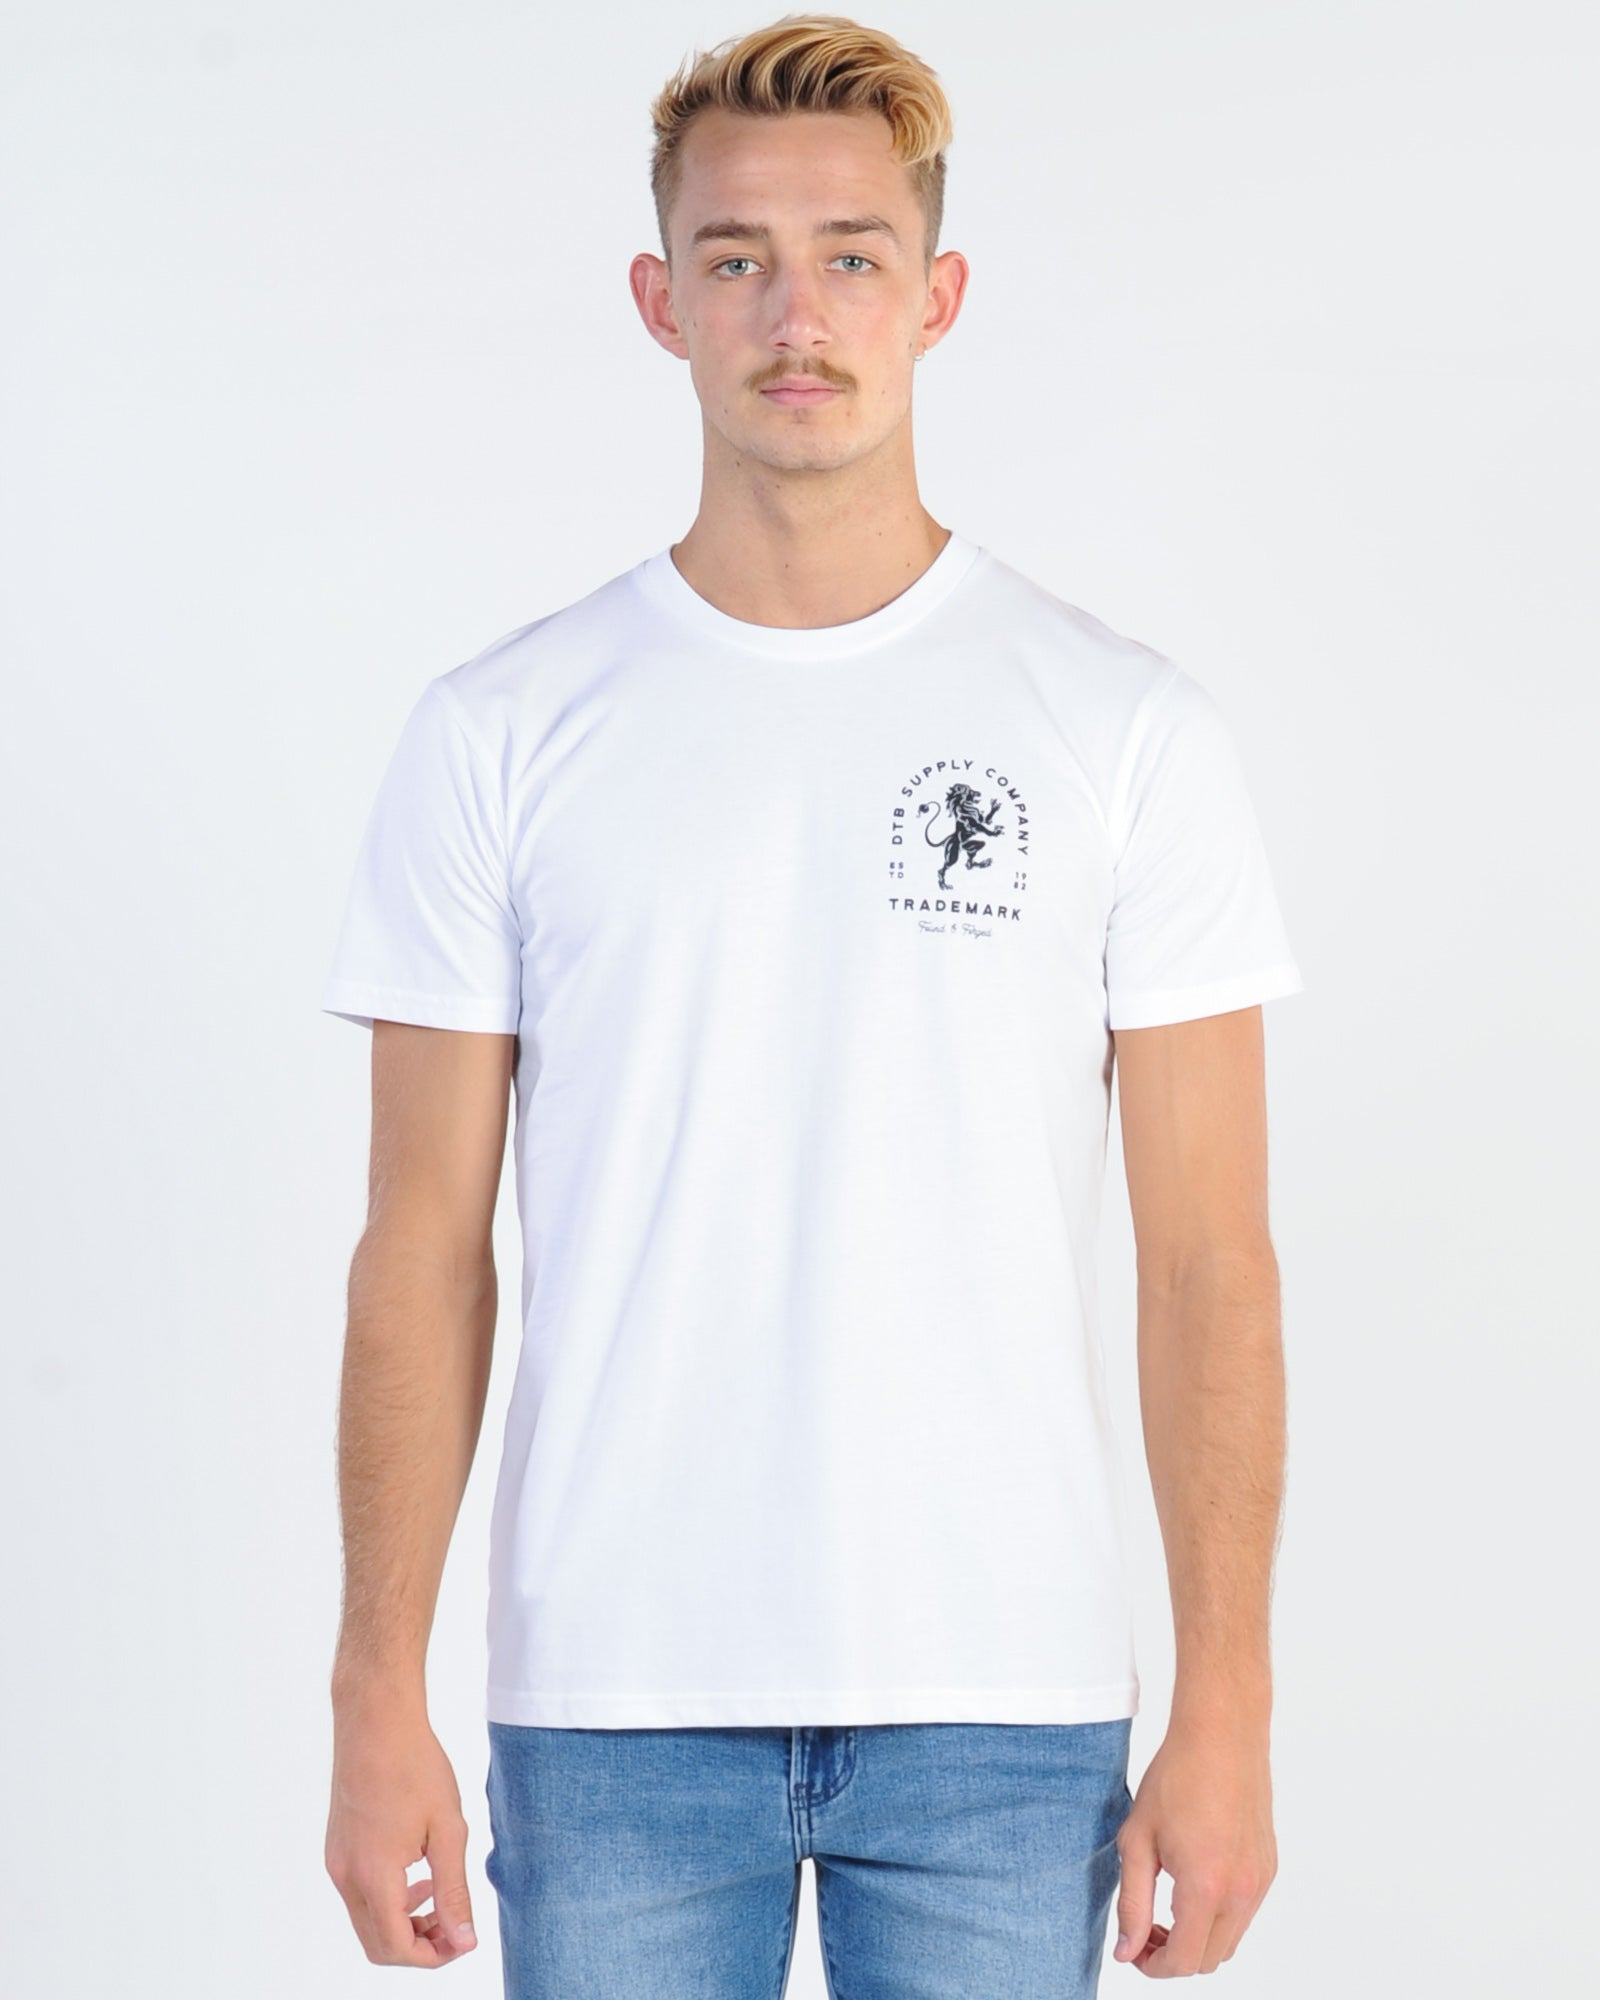 Dtb Supply Lion Heart Tee - White